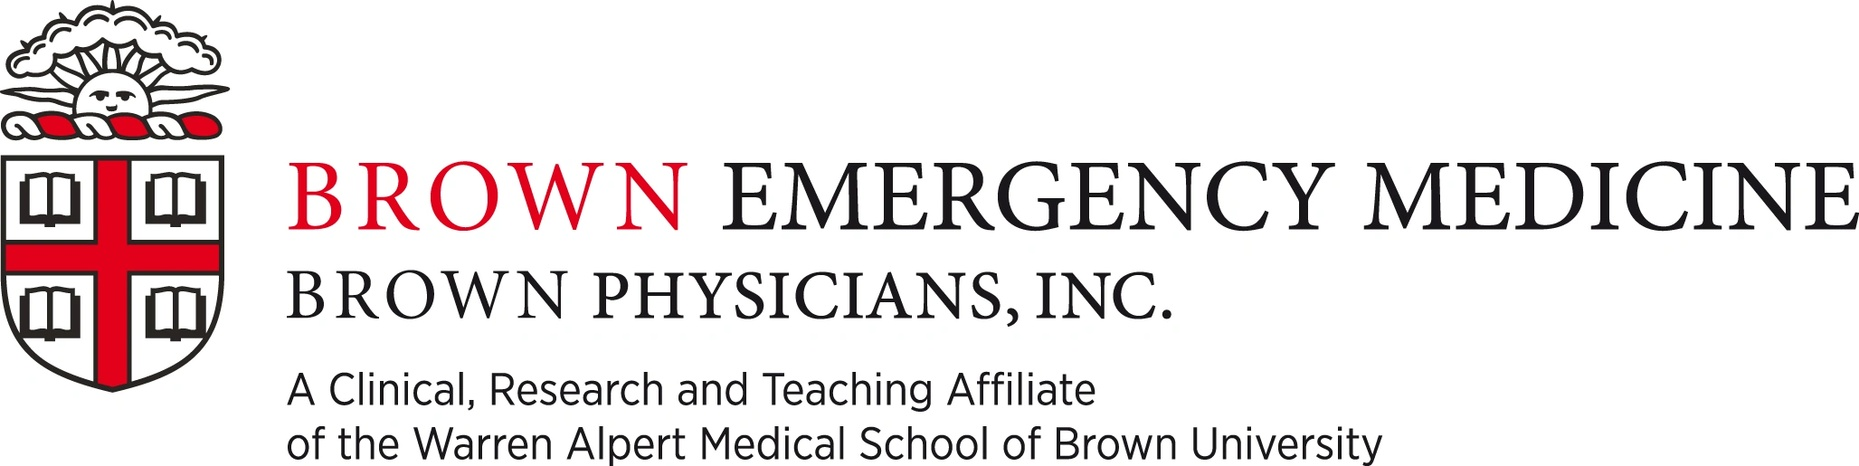 Brown Emergency Medicine